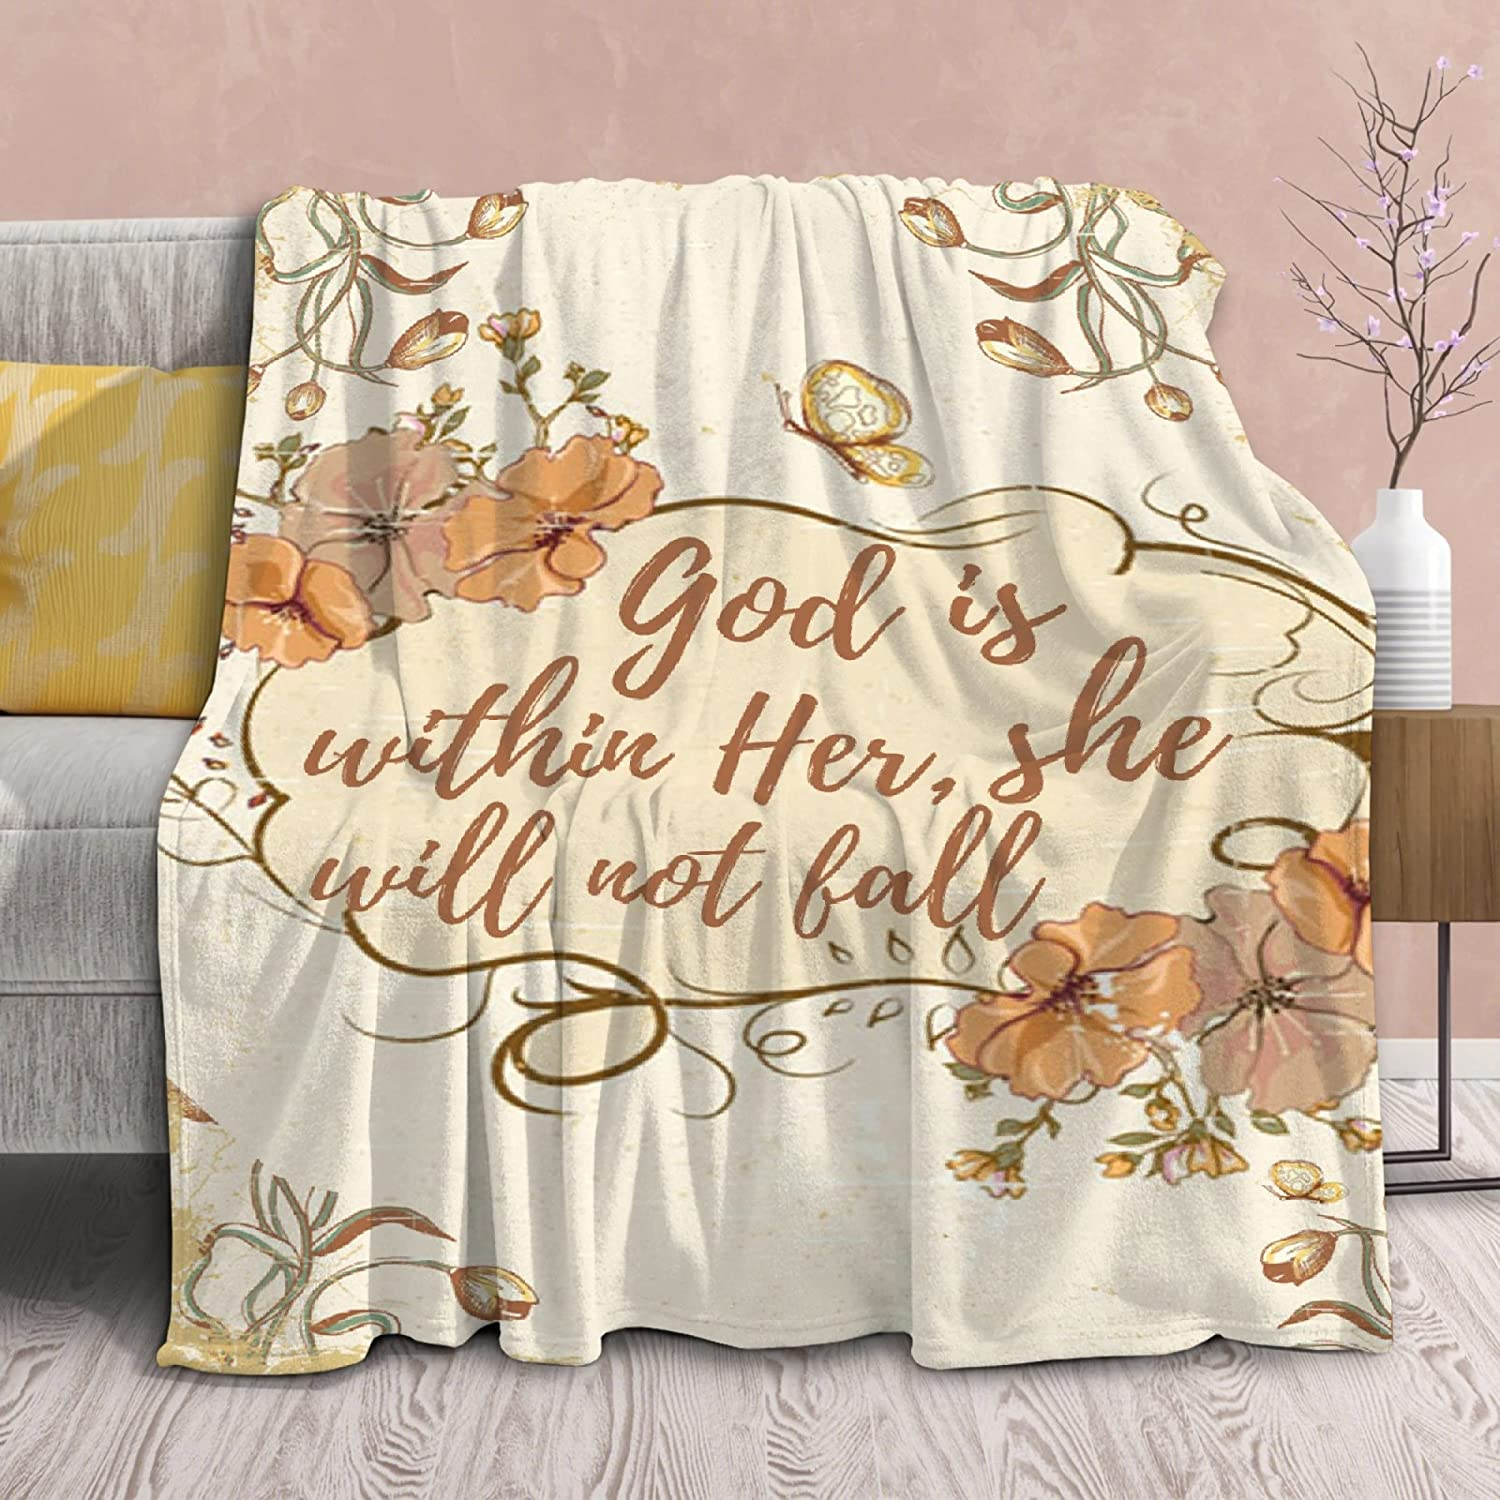 Blanket Bible supreme Free Shipping Cheap Bargain Gift Verses on God is Sof Lightweight Her Within Throws